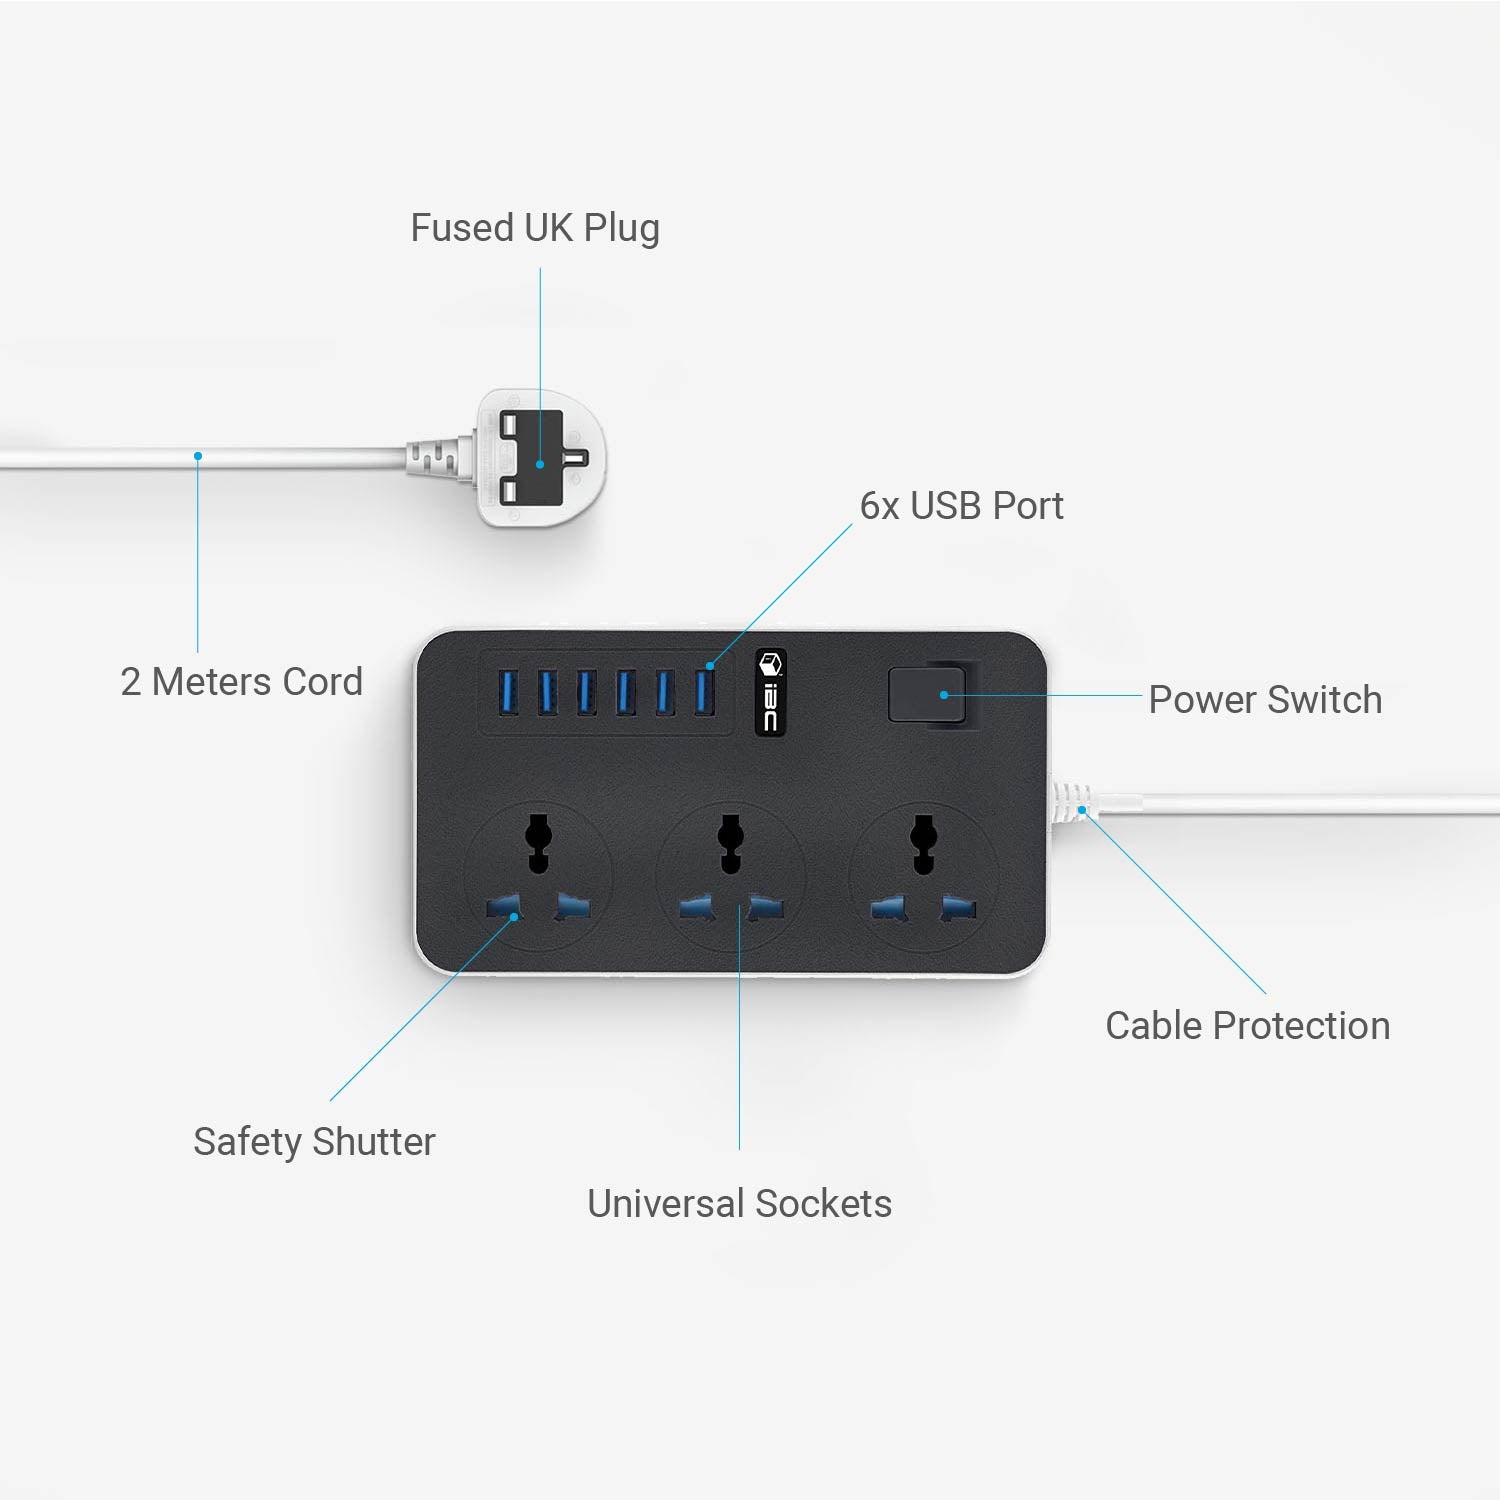 T09 6 USB Port 3 Way Outlet (UK Plug)